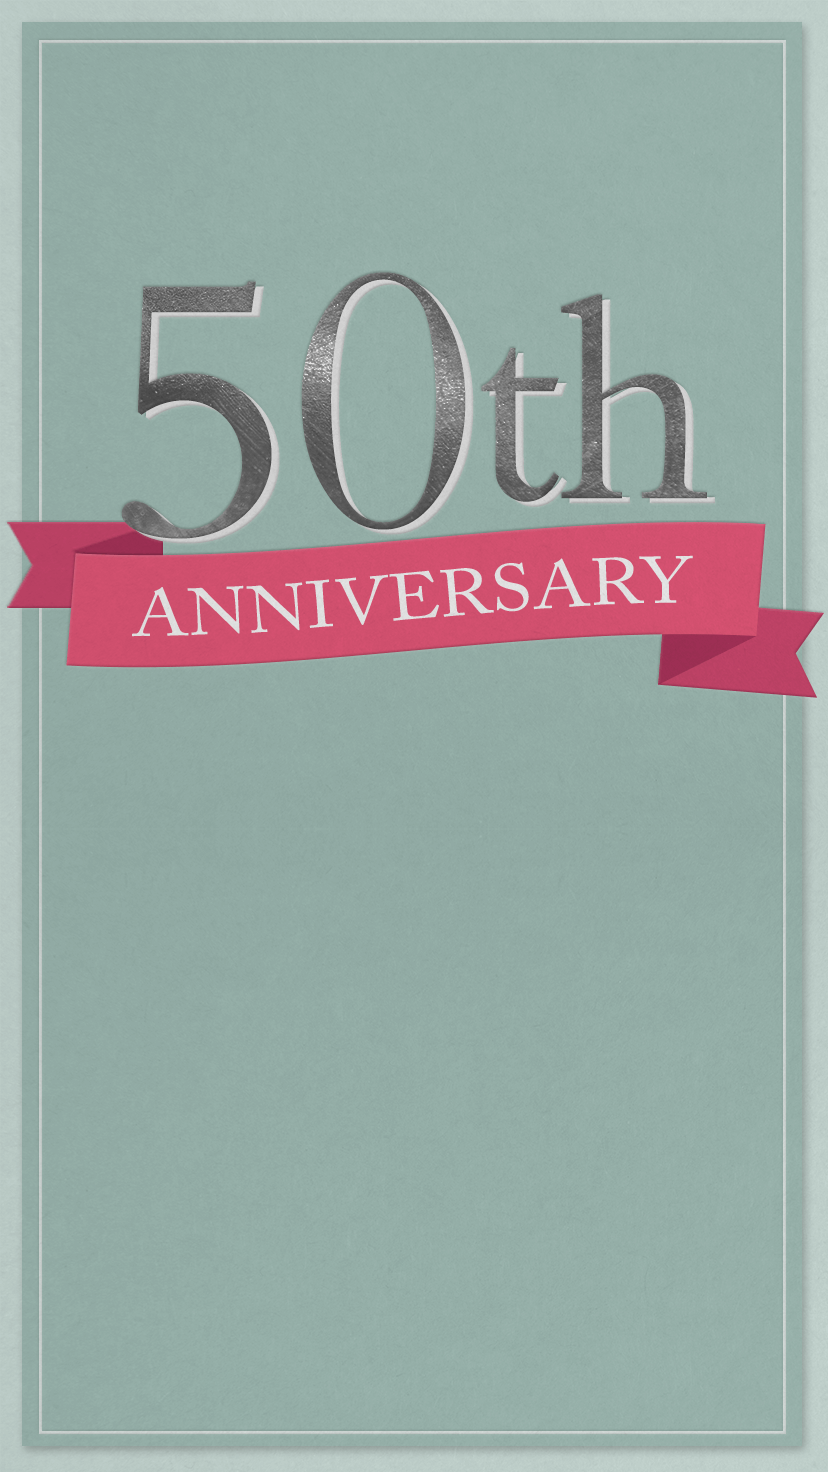 Celebrate Your 50th Anniversary With This Free Digital Evite